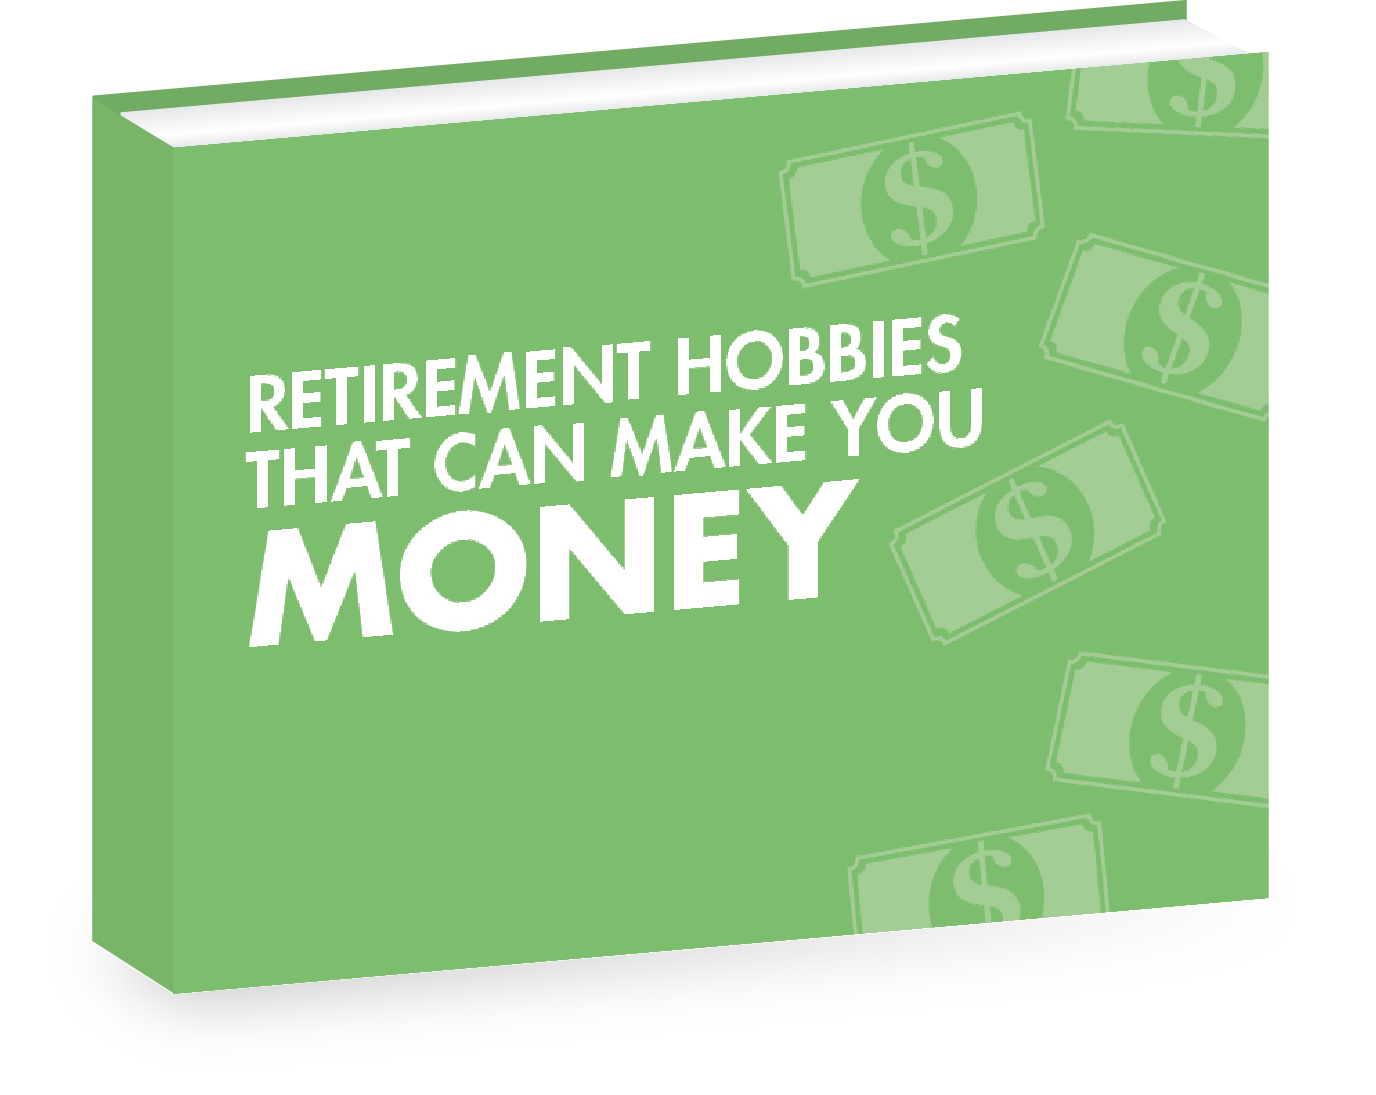 Retirement Hobbies That Can Make You Money